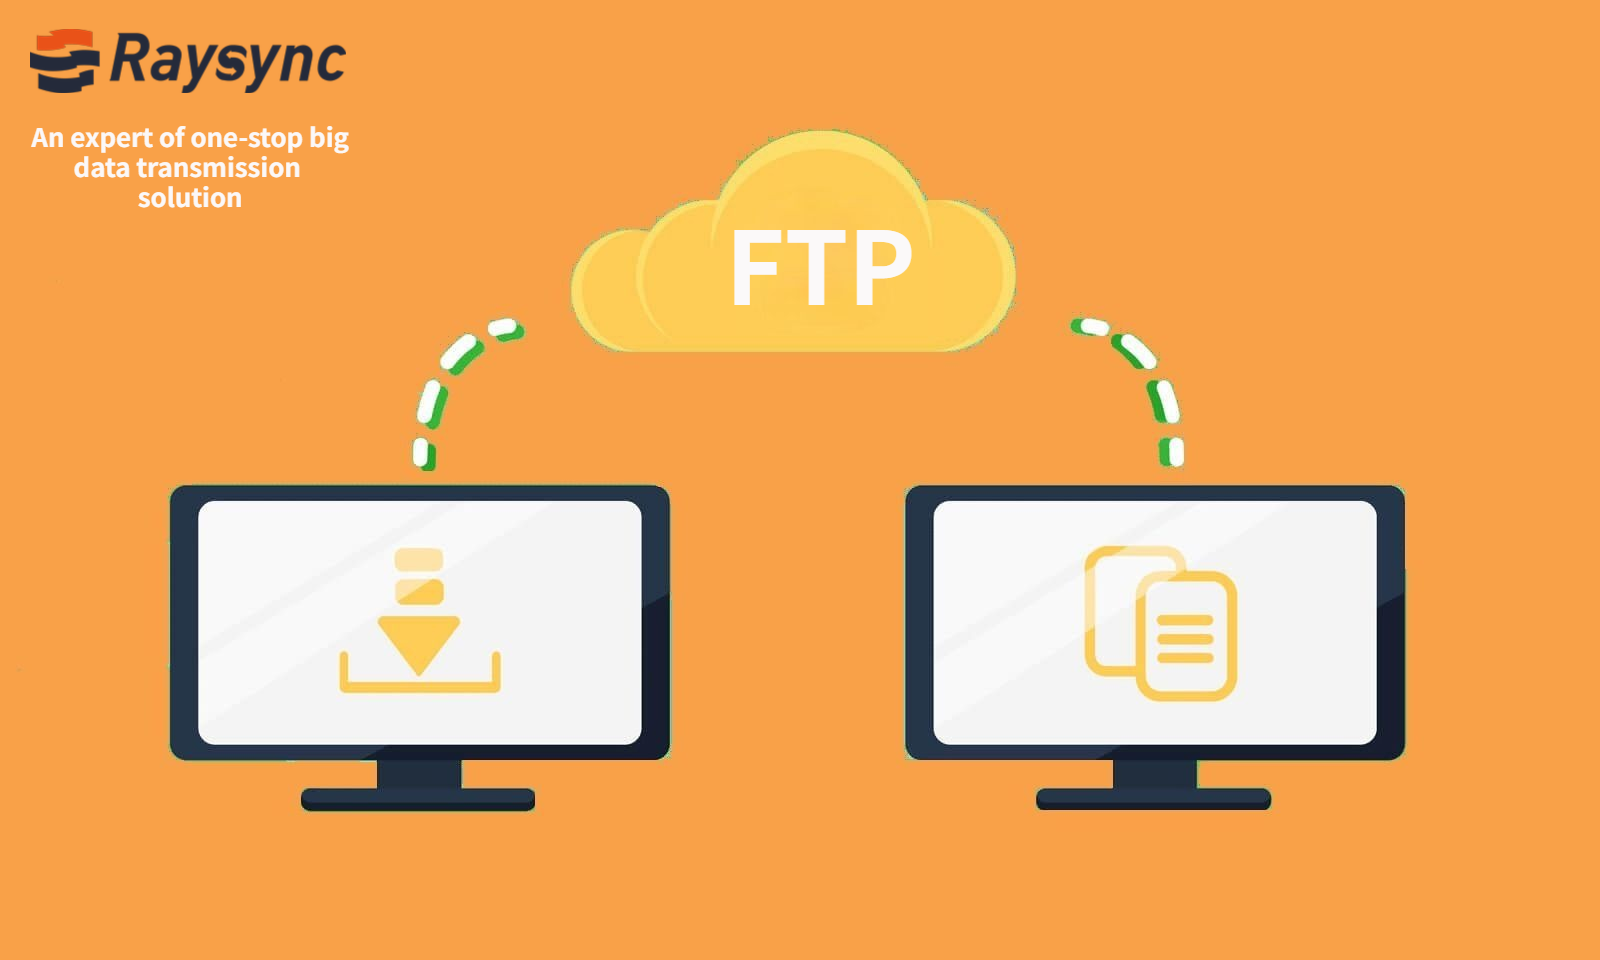 What is File Transfer Protocol (FTP)?